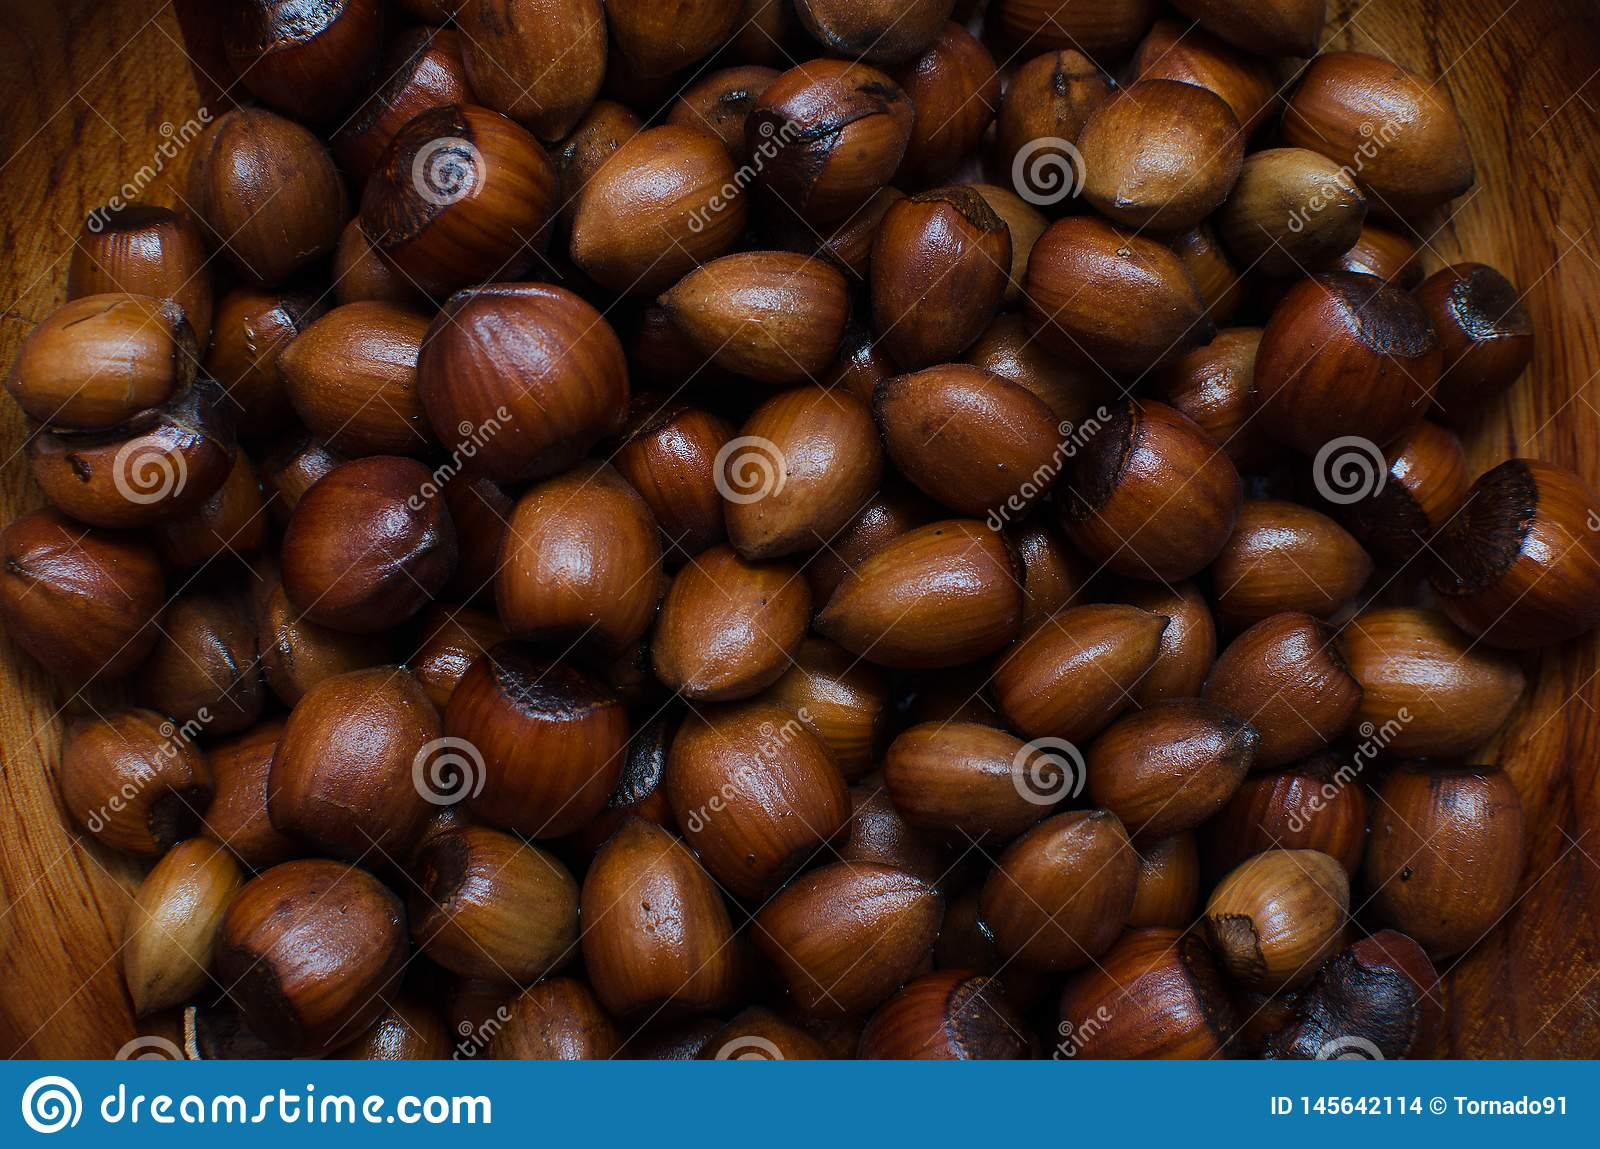 Hazelnuts scattered on boards, photographed from above, forming a uniform background